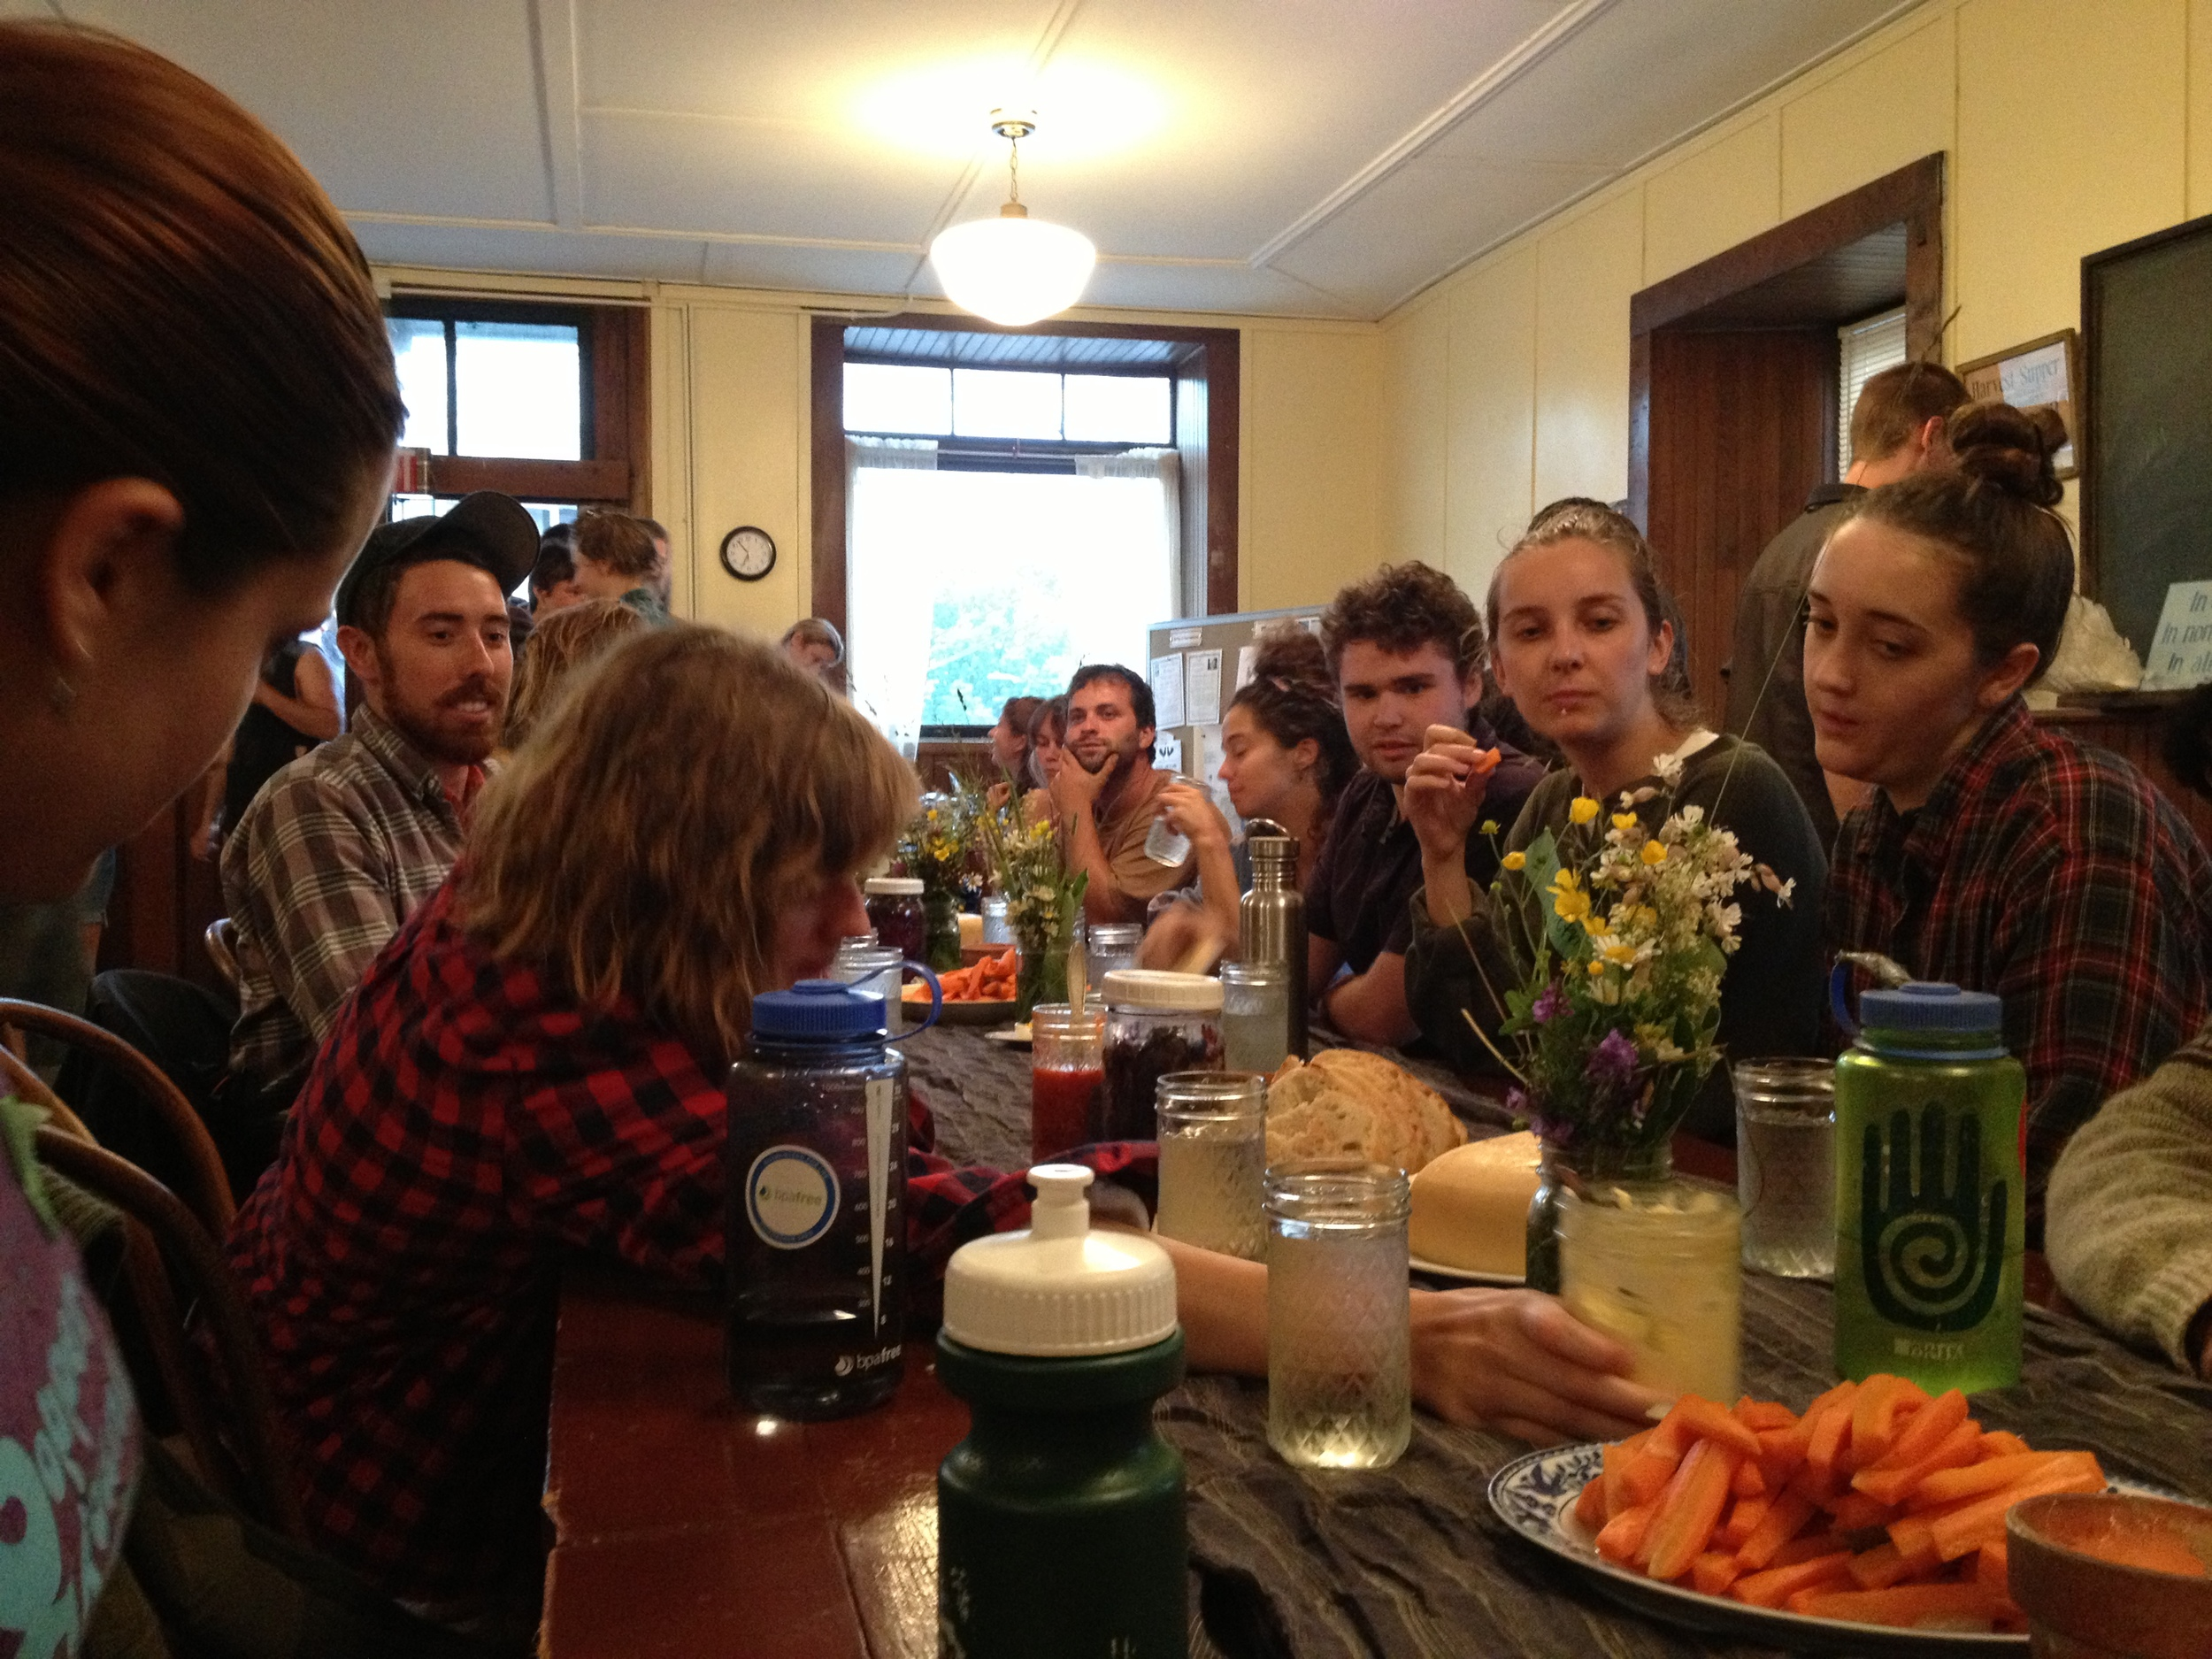 Back downstairs, we gathered for a solstice feast, with food grown by some of the farmers in attendance.